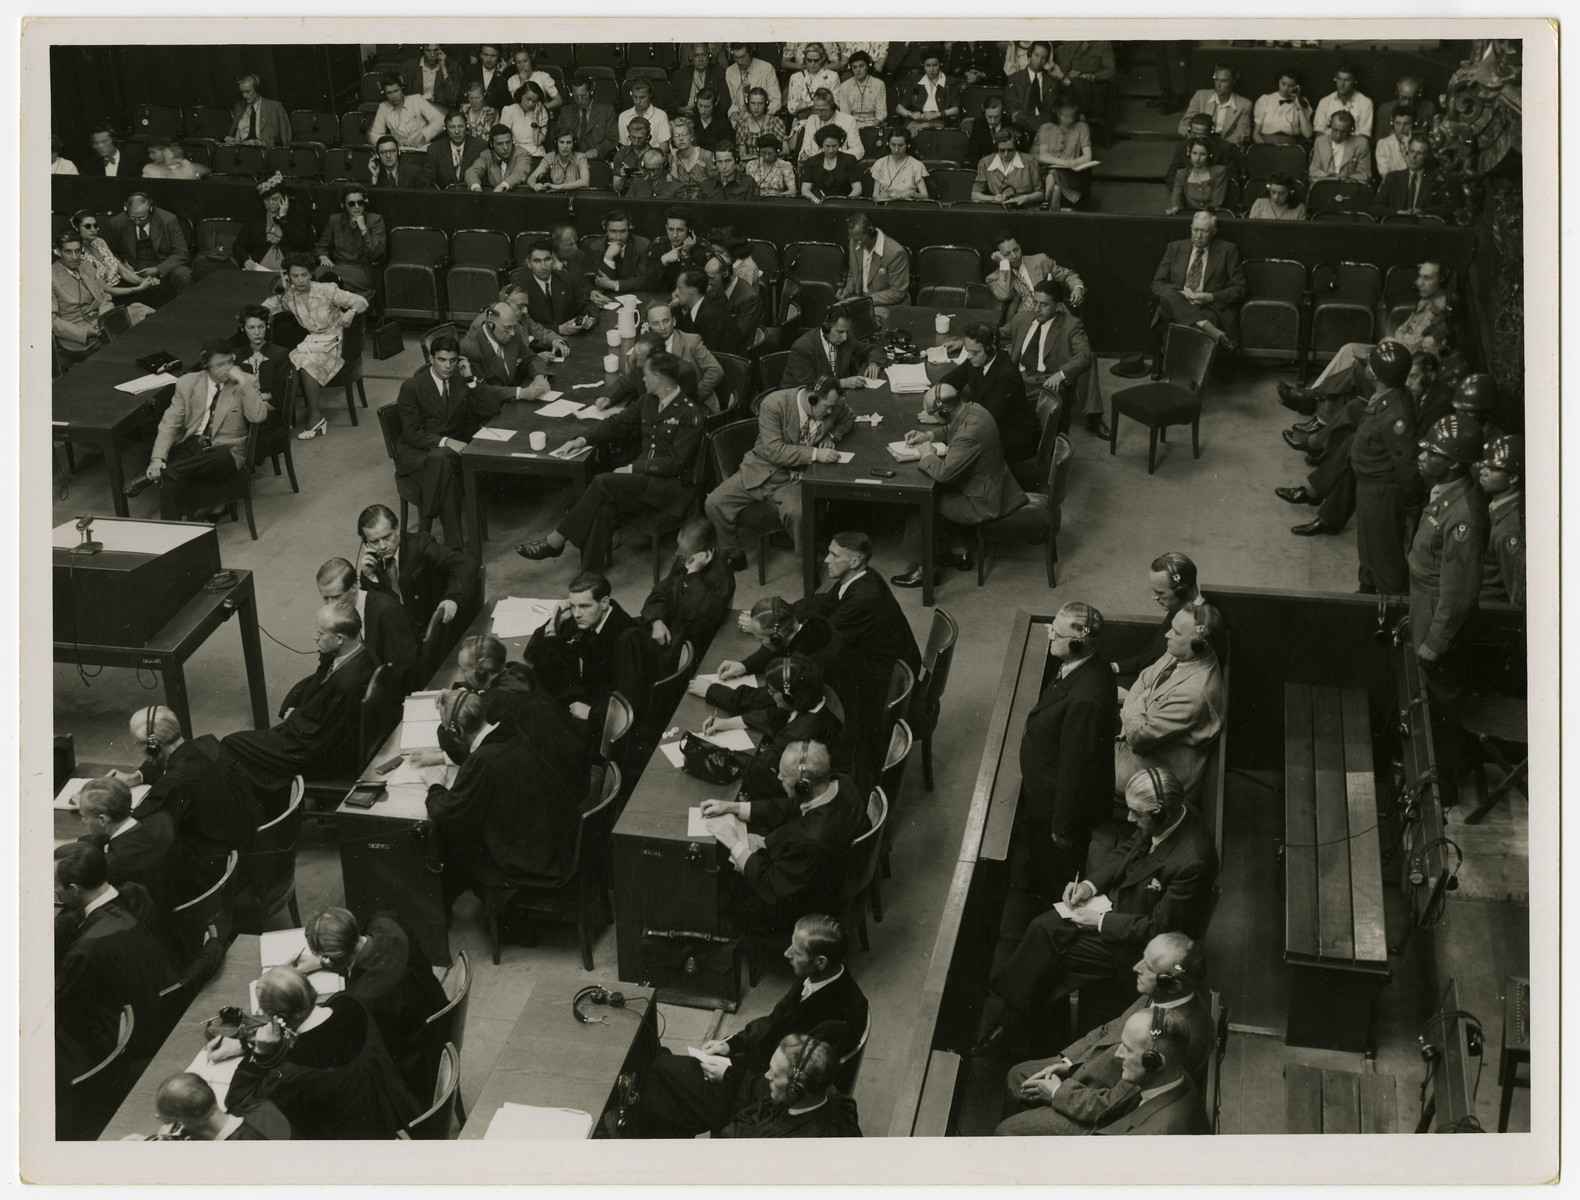 One of the defendants of the Krupp Case stands in the defendants dock while American military police stand behind him.